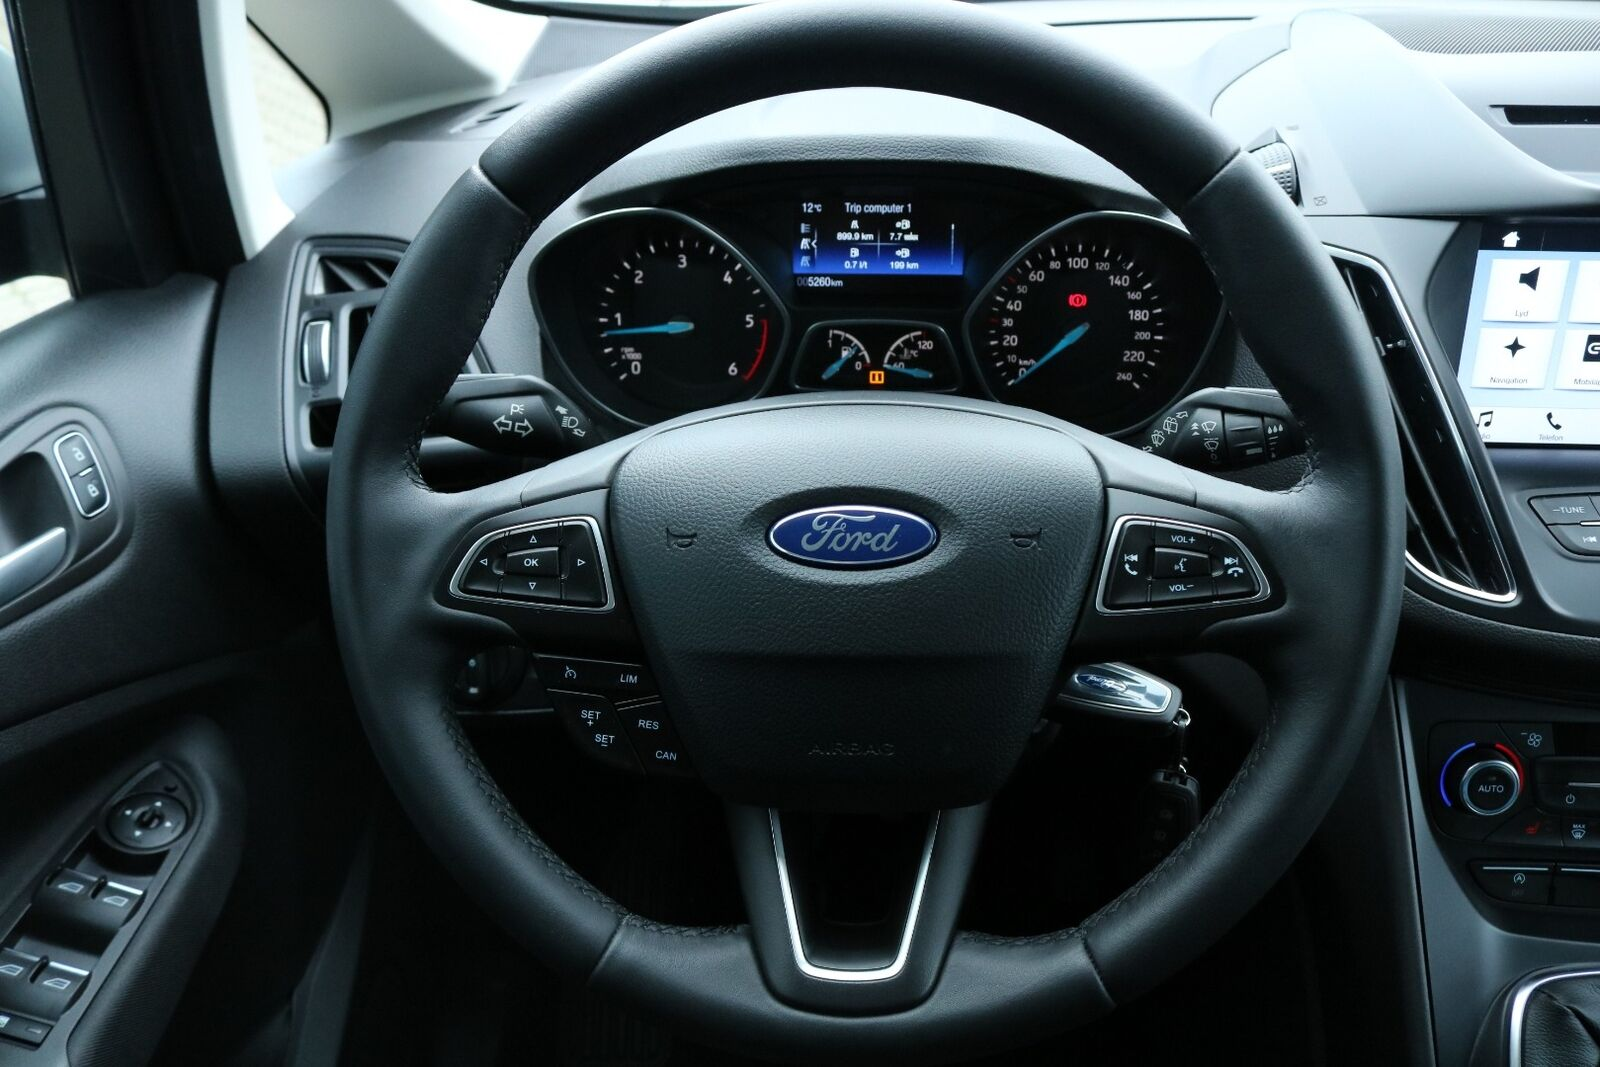 Ford Grand C-MAX TDCi 150 Cool & Connect